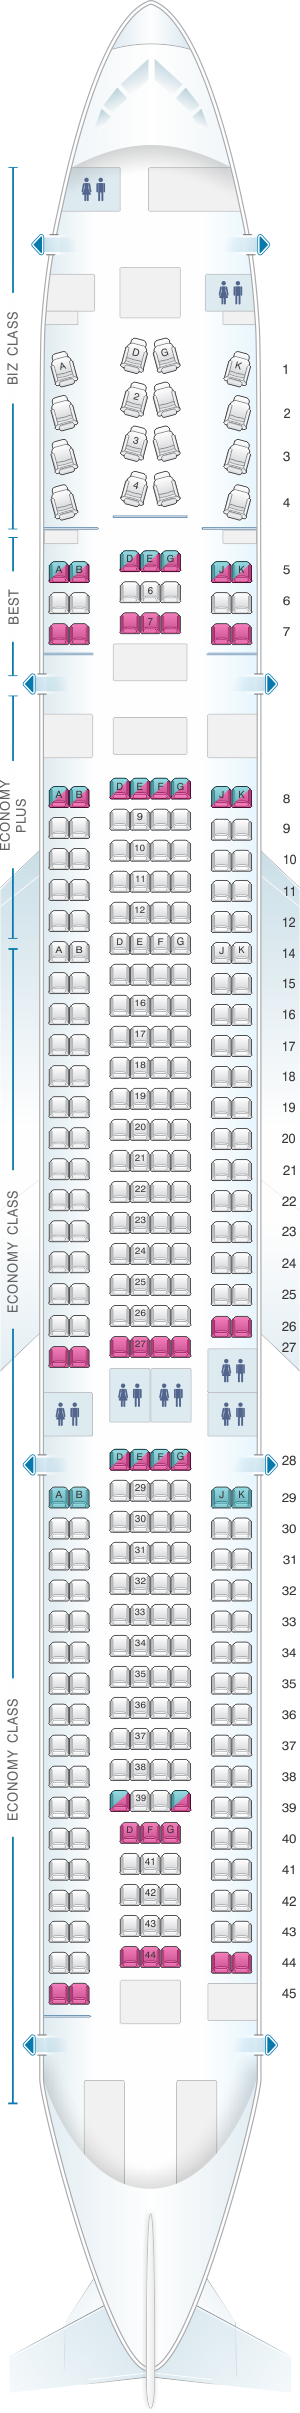 Seat map for Eurowings Airbus A330 300